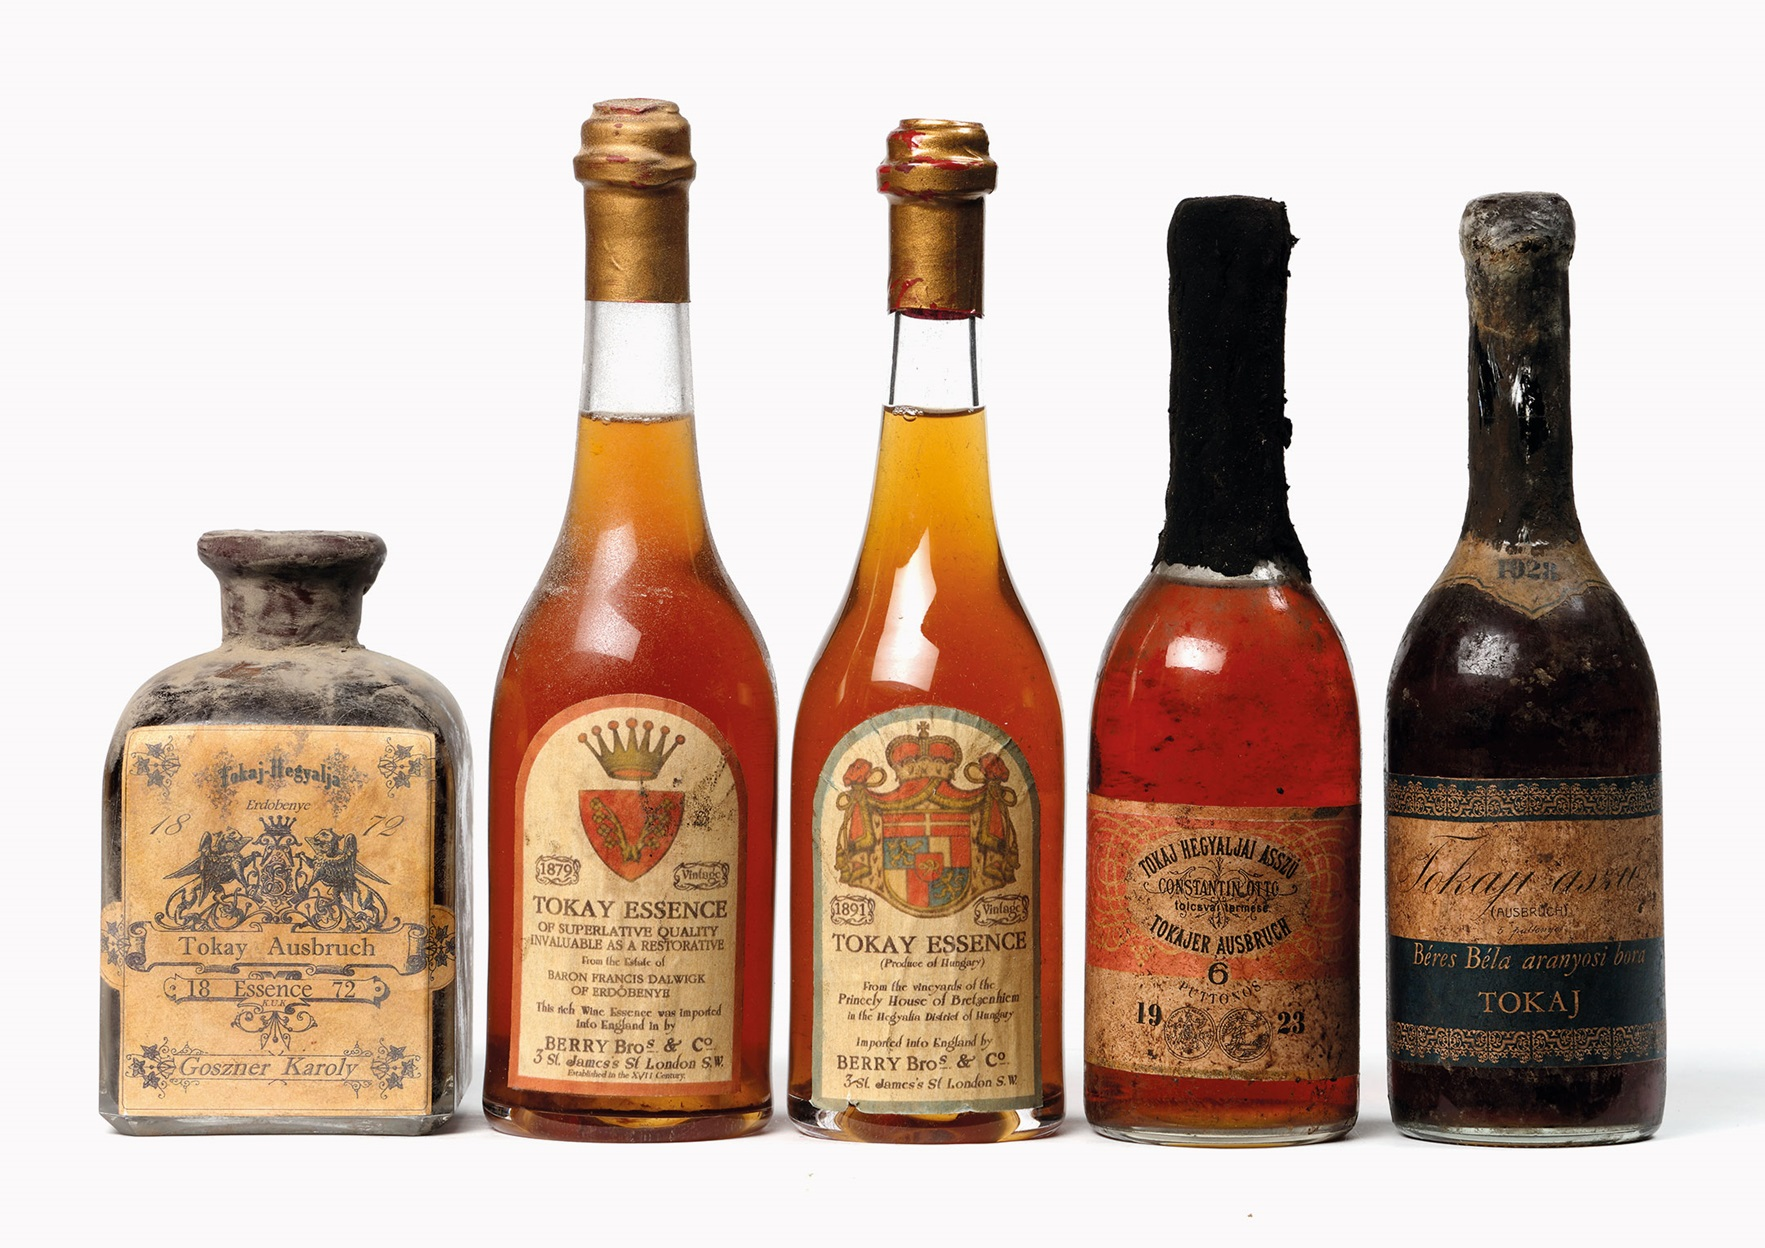 Tokay selection. Lot 274, Lot 275, Lot 276 and Lot 277. Total estimate of the 5 bottles CHF 5,600-7,000 ($5,375-6,720).